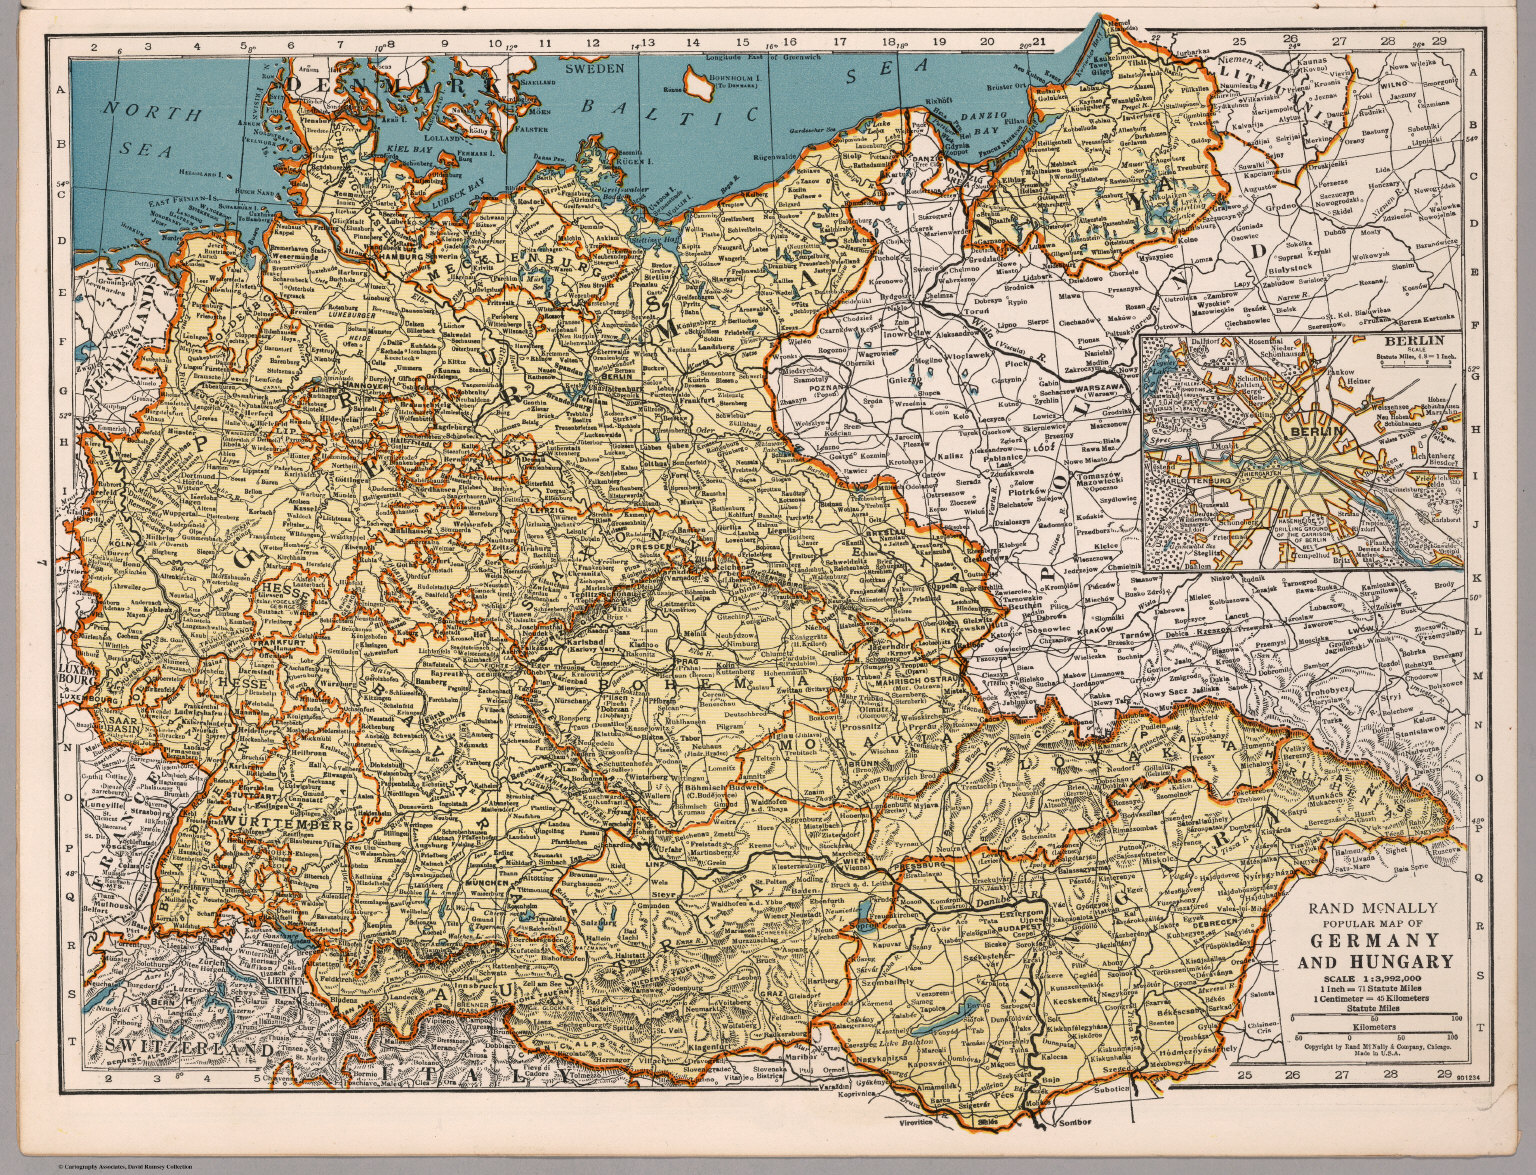 Rand McNally Popular Map Of Germany And Hungary David Rumsey - Germany map view